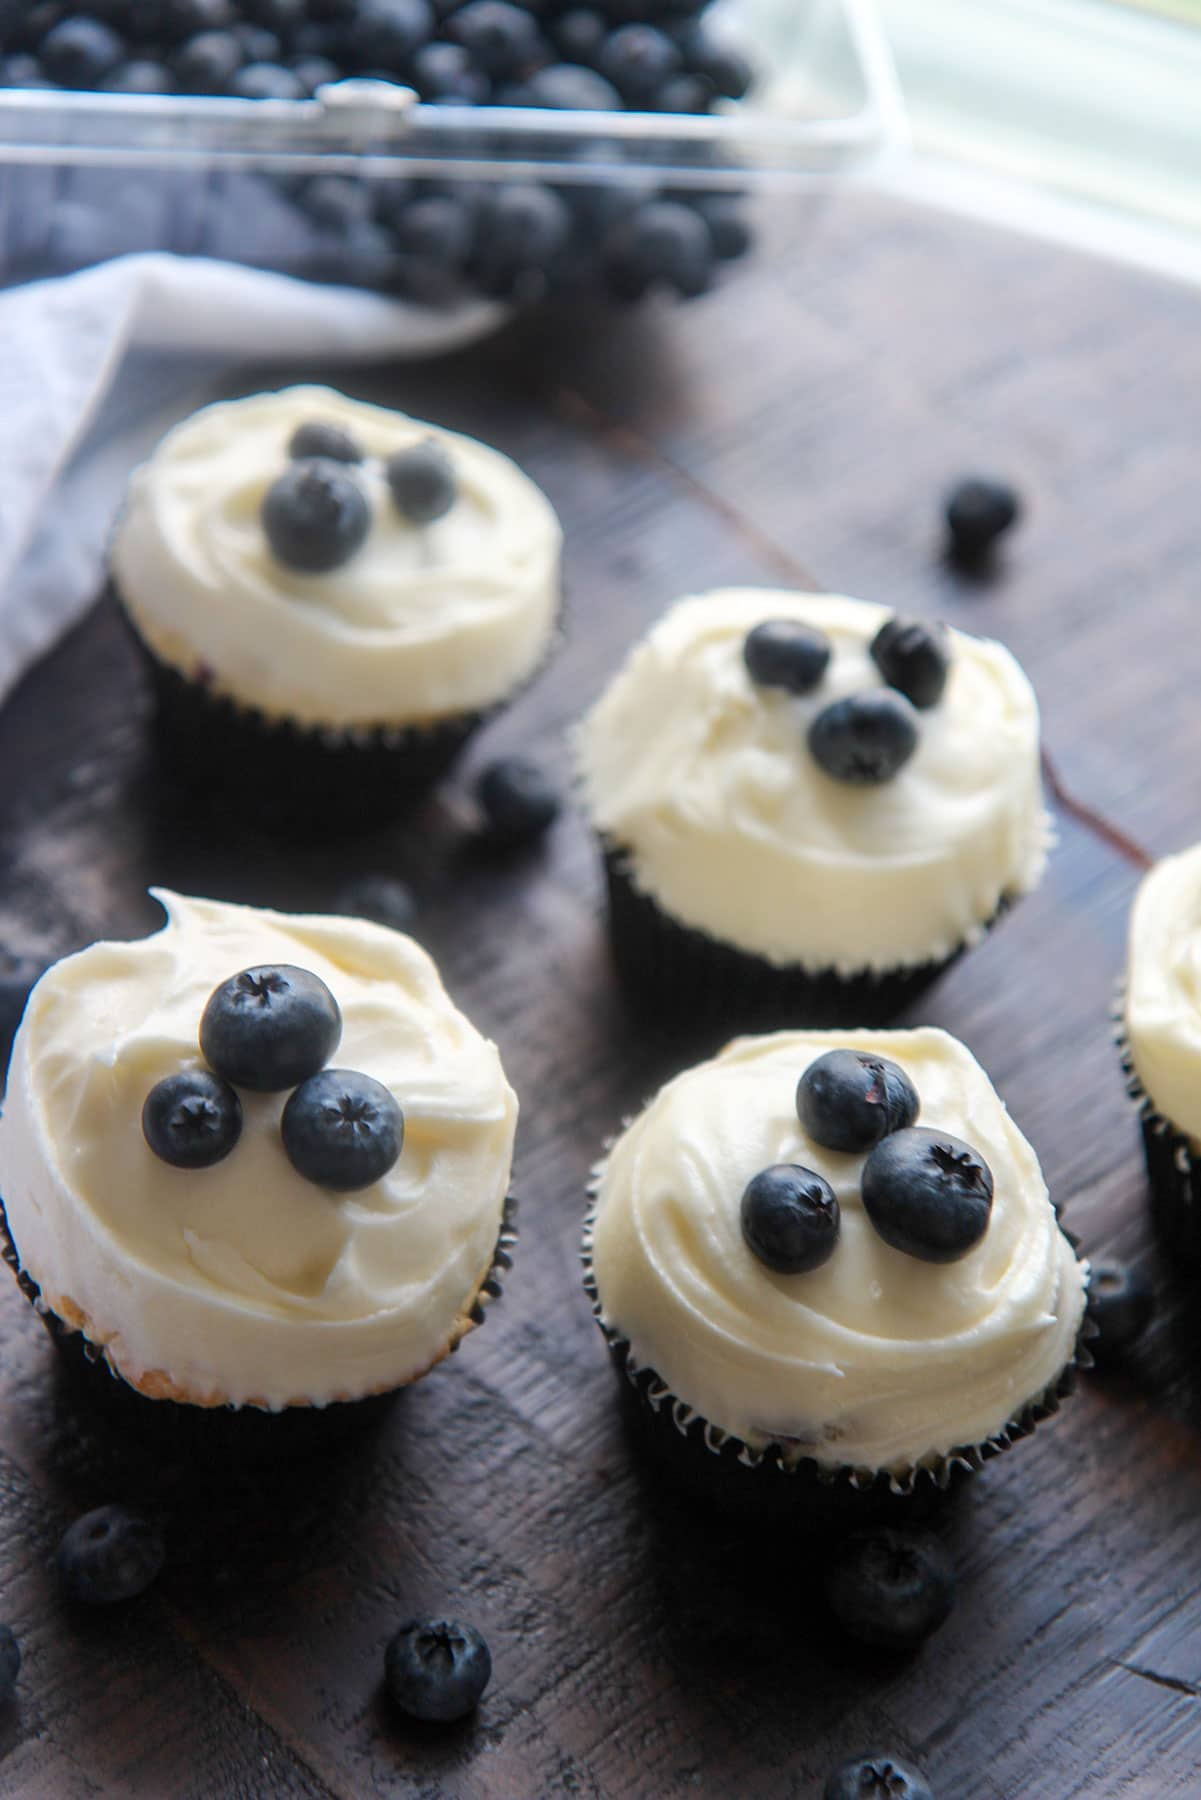 four cupcakes and fresh blueberries on the side